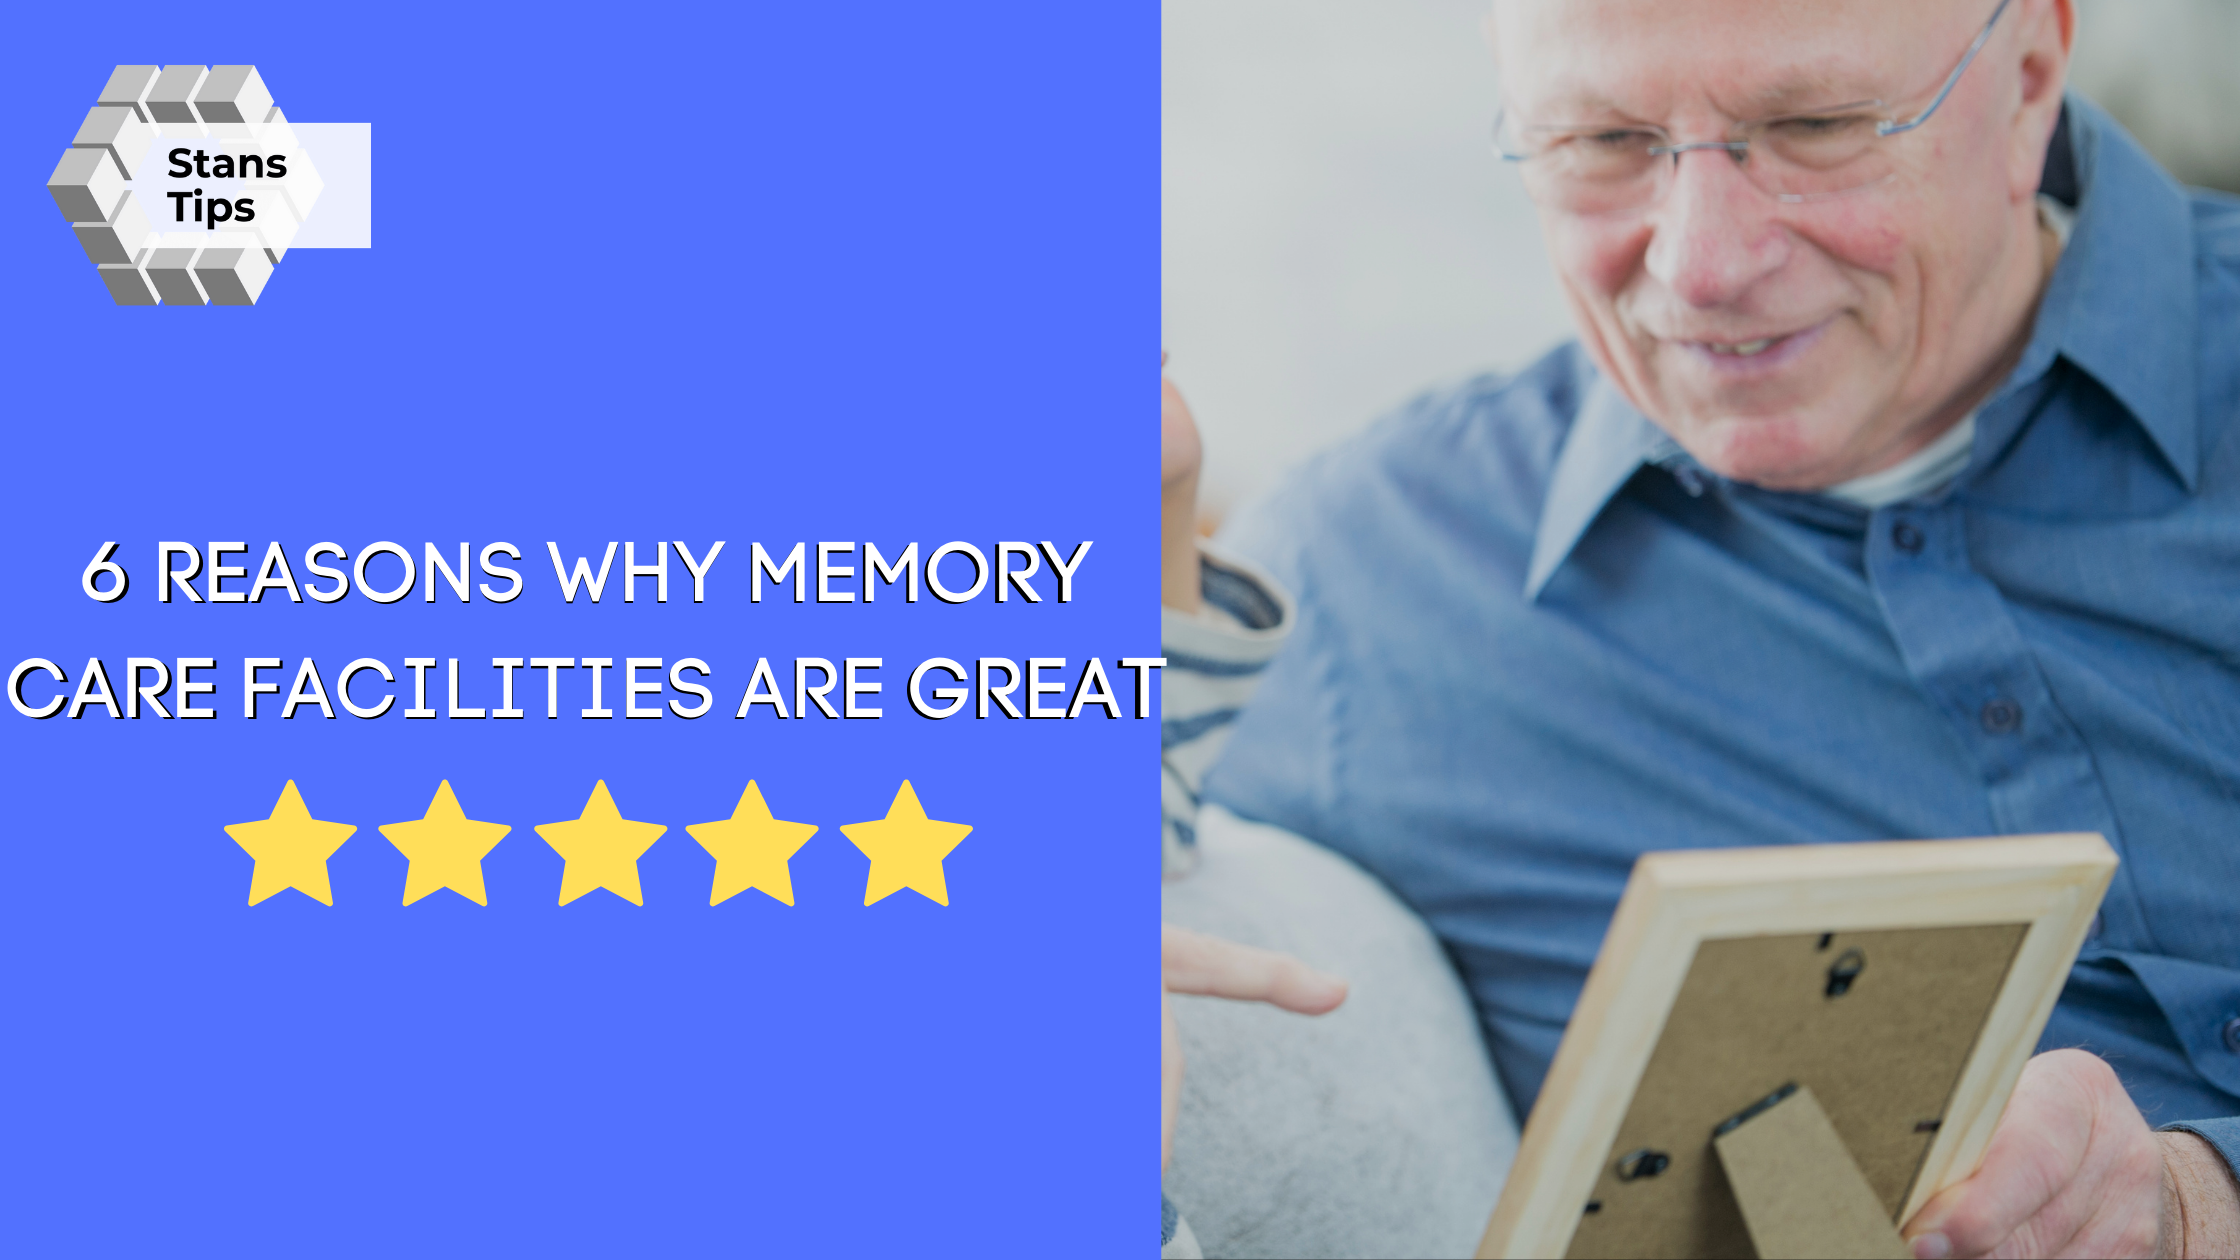 Why memory care facilities